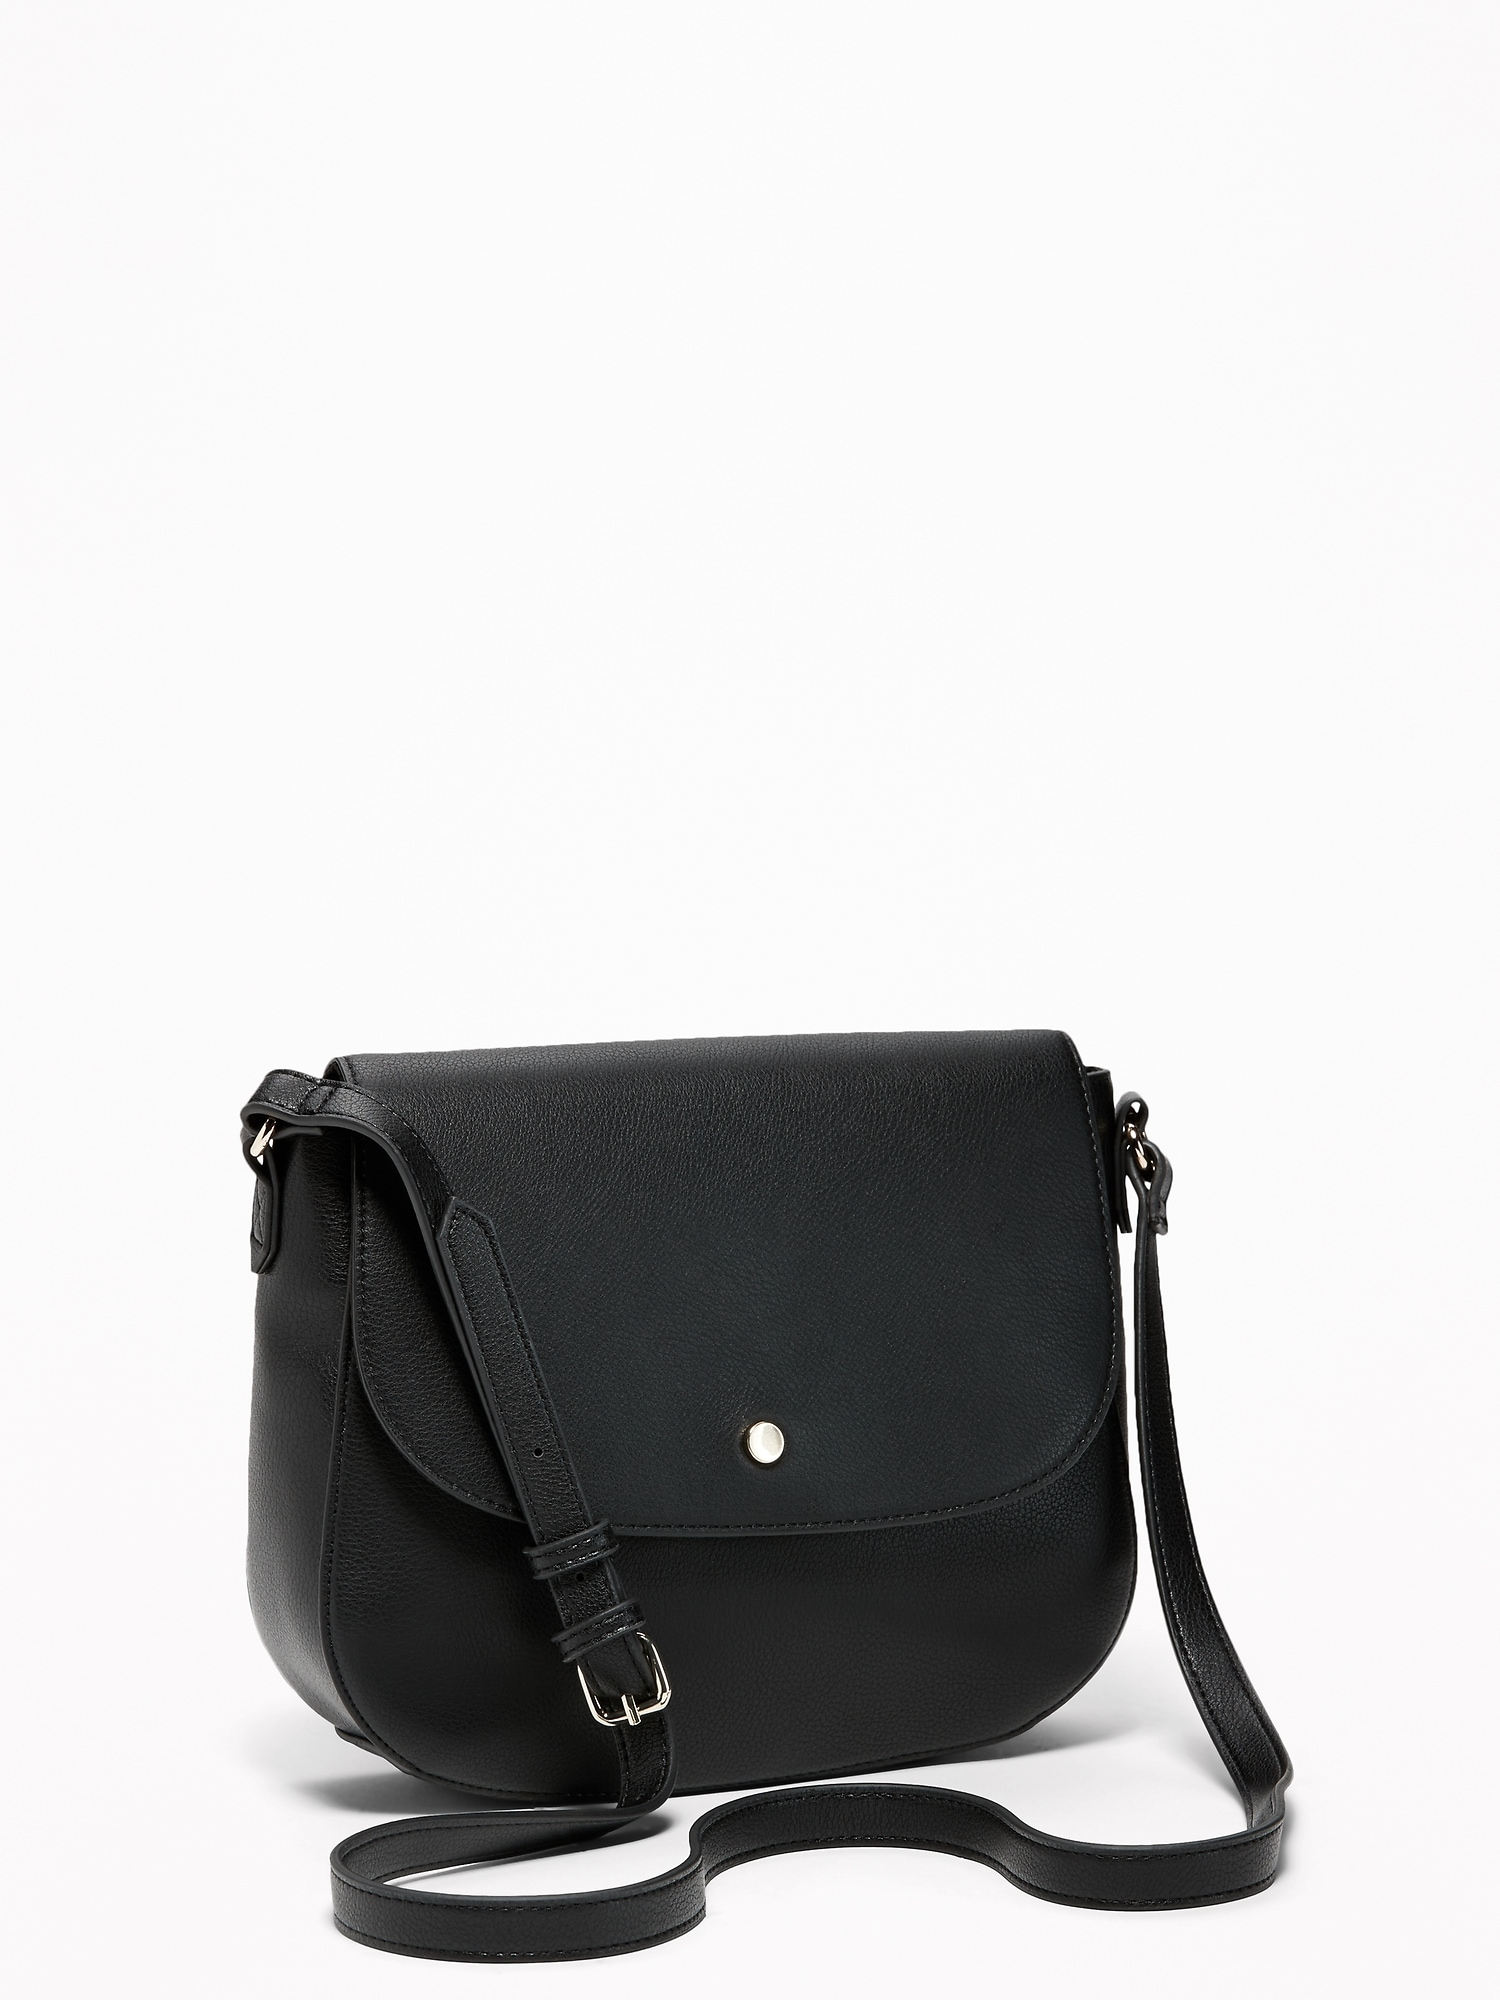 3c196abf18 Faux-Leather Saddle Bag for Women